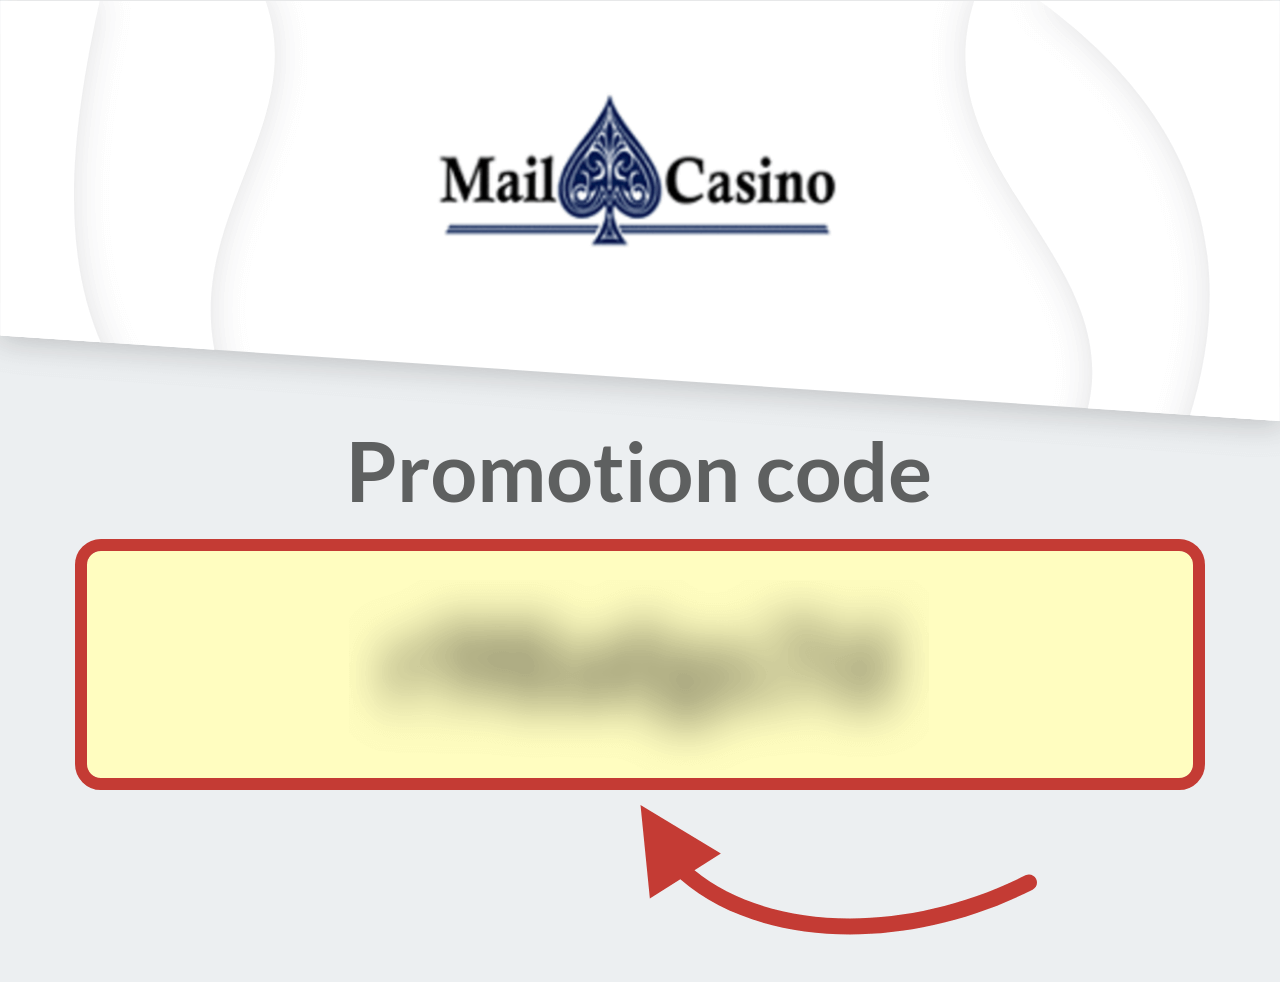 Mail Casino Promotion Code